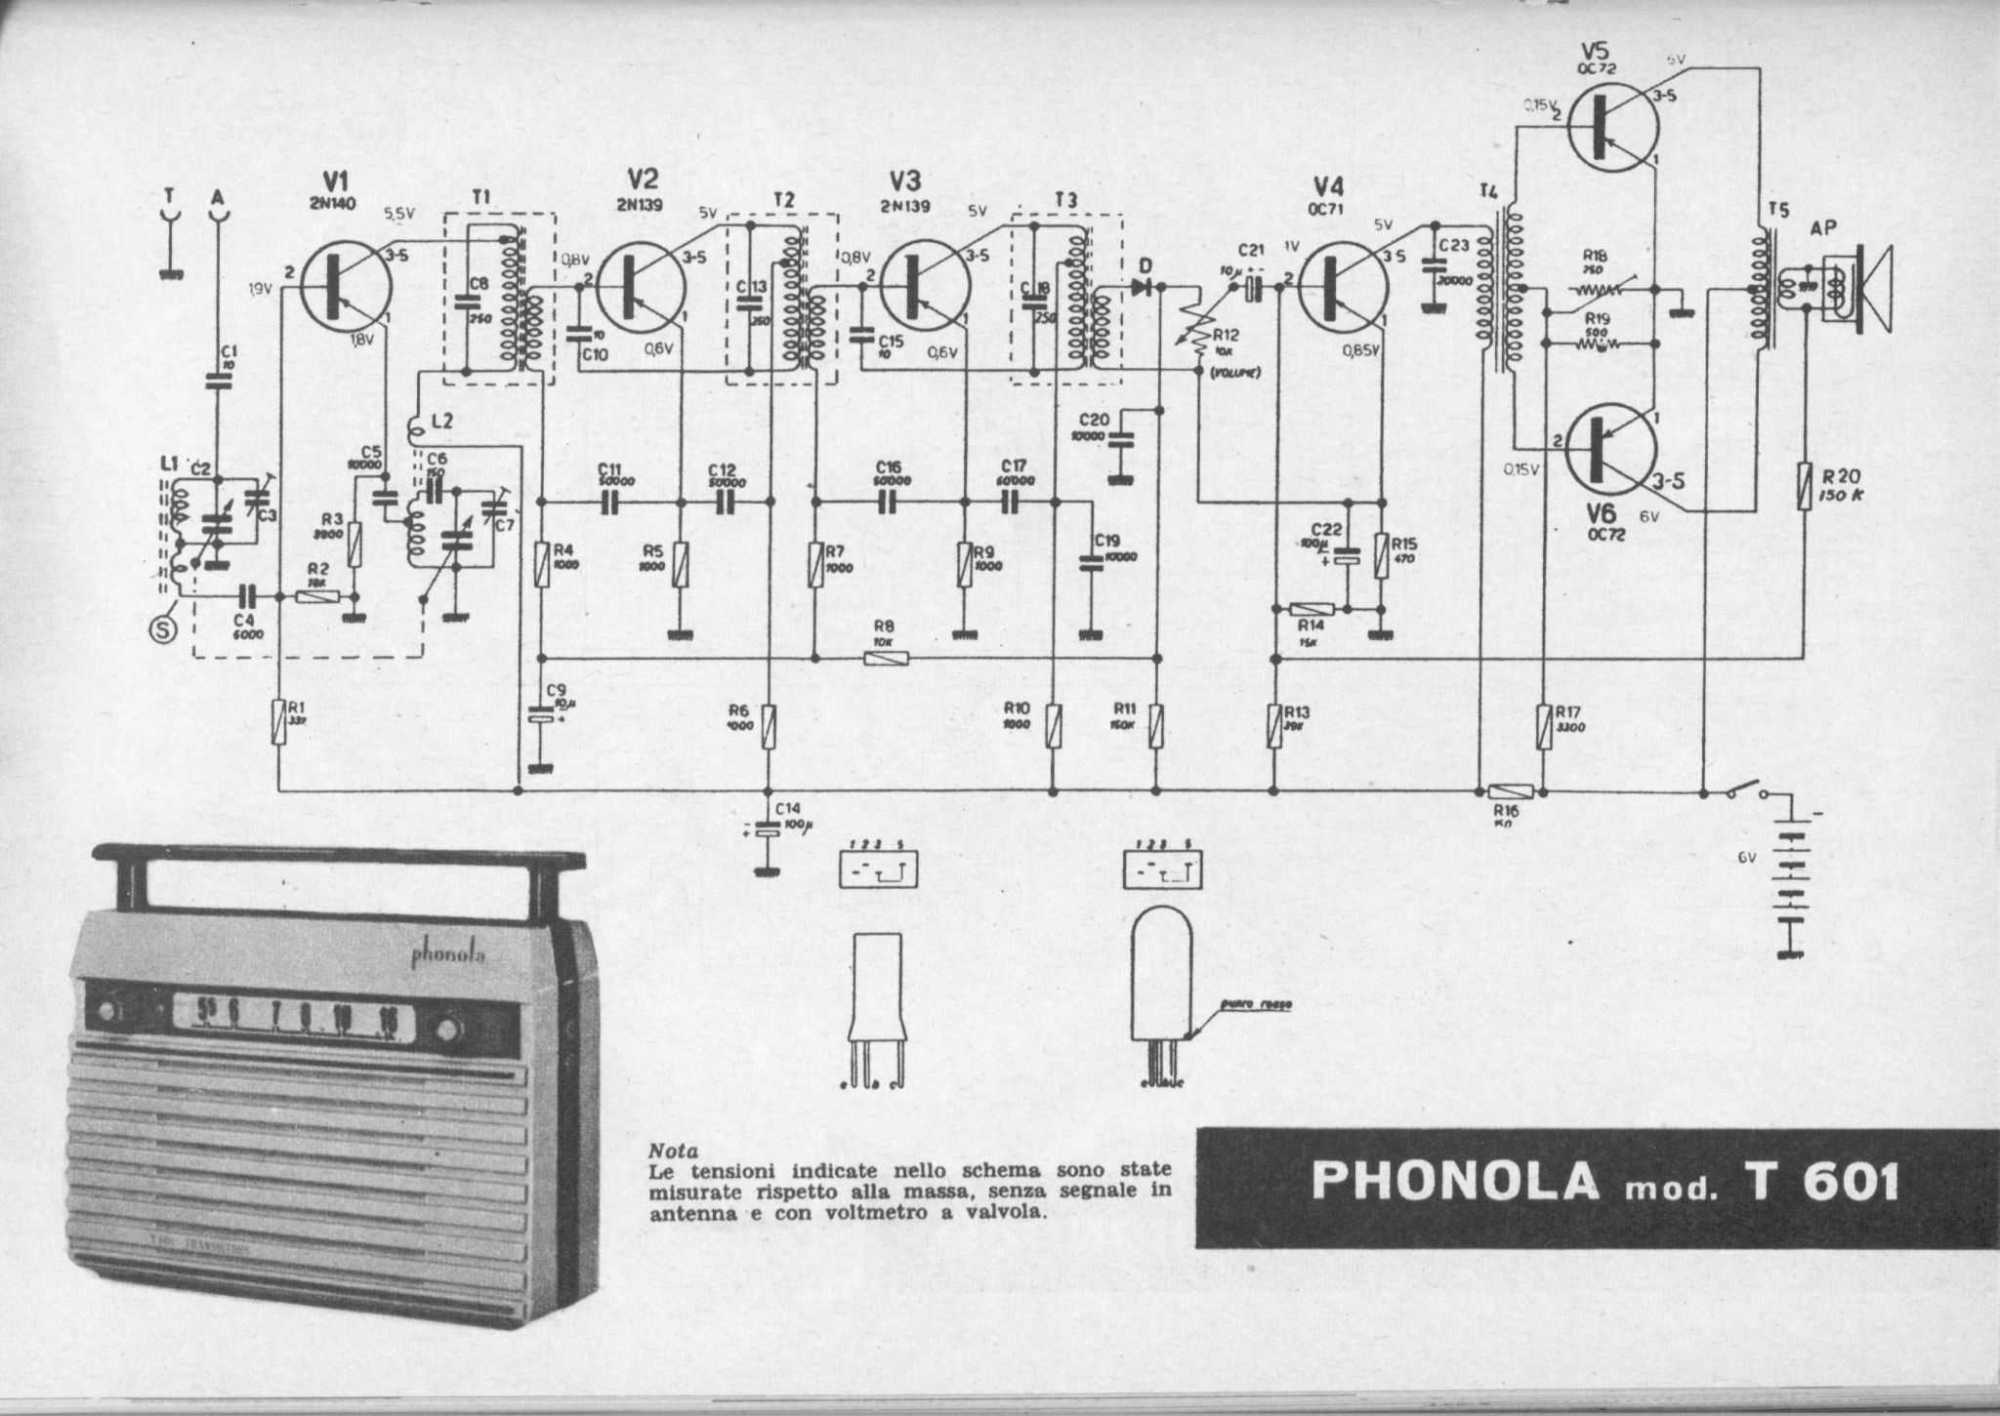 hight resolution of phonola mod t 601